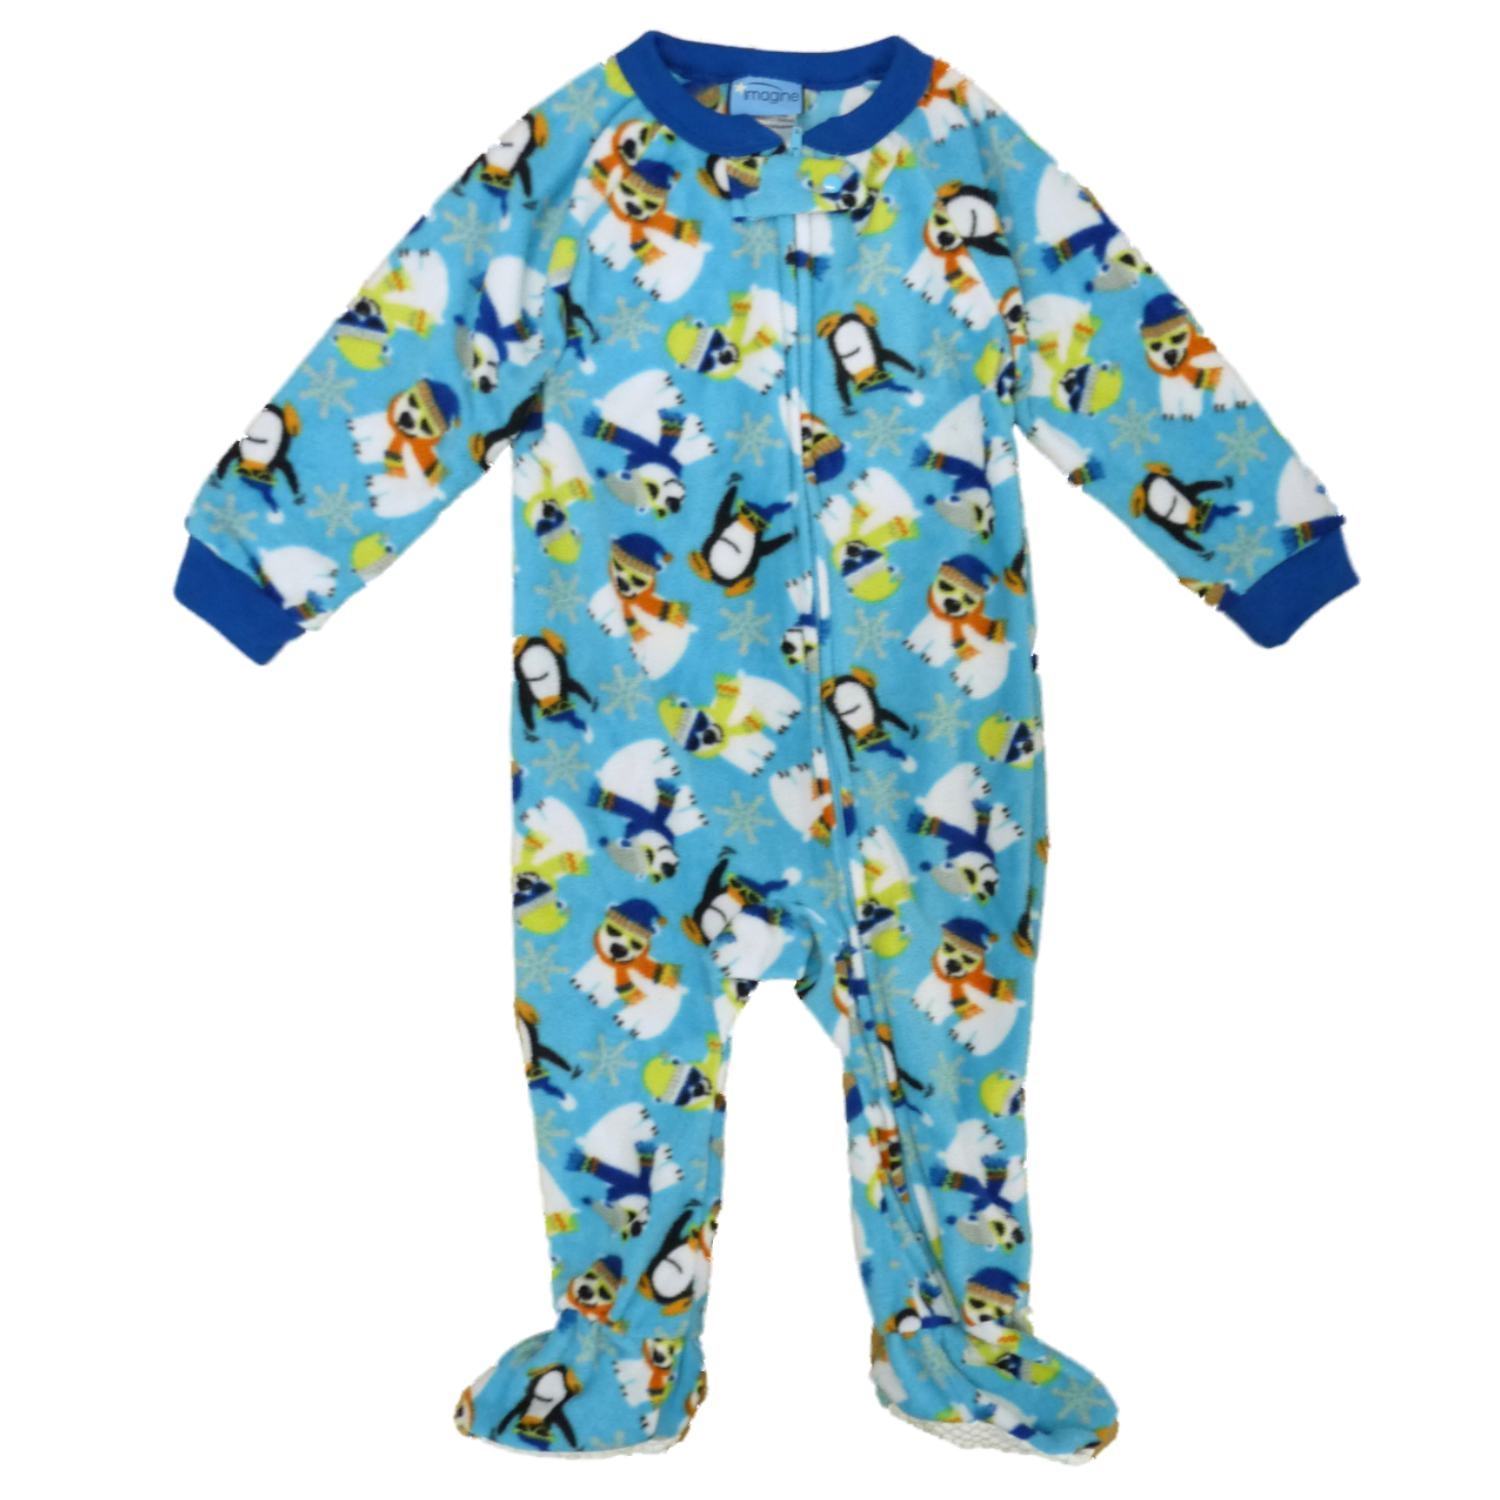 Imagine Infant & Toddler Boys Blue Fleece Polar Bear & Penguin Blanket Sleeper